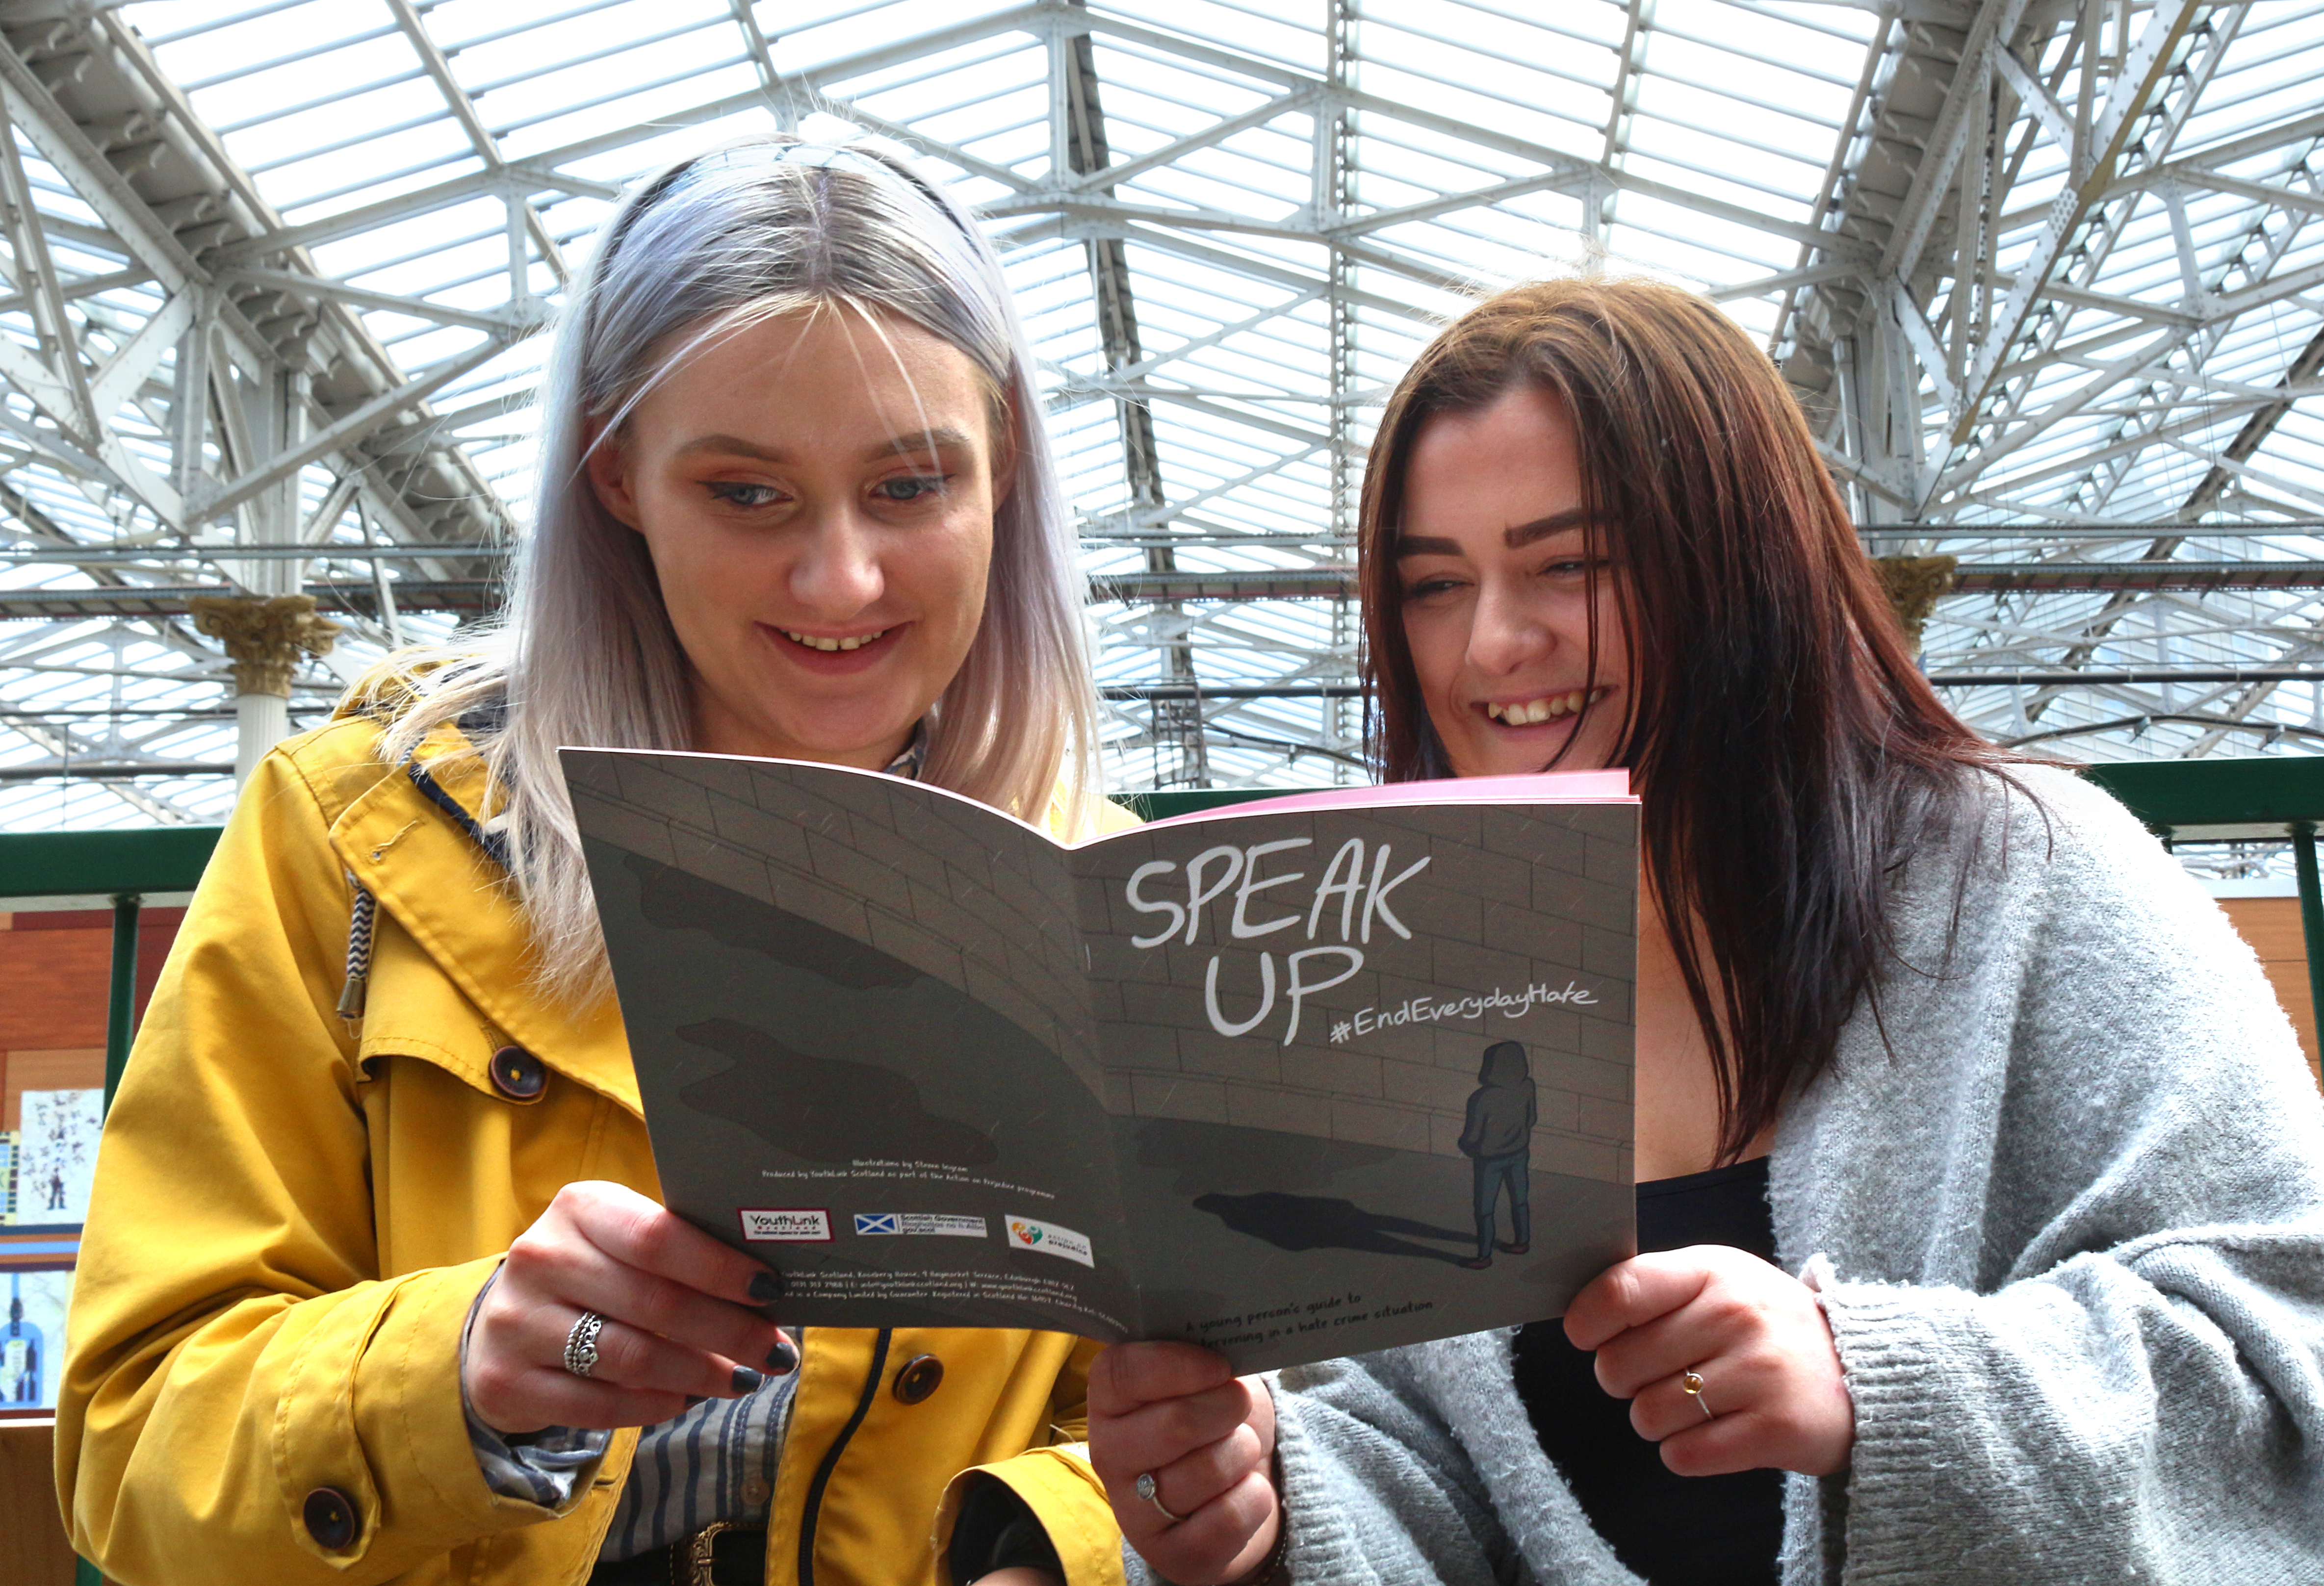 The new comic book 'Speak Up', created as part of the Action on Prejudice programme, which urges young people to stand up to hate crime